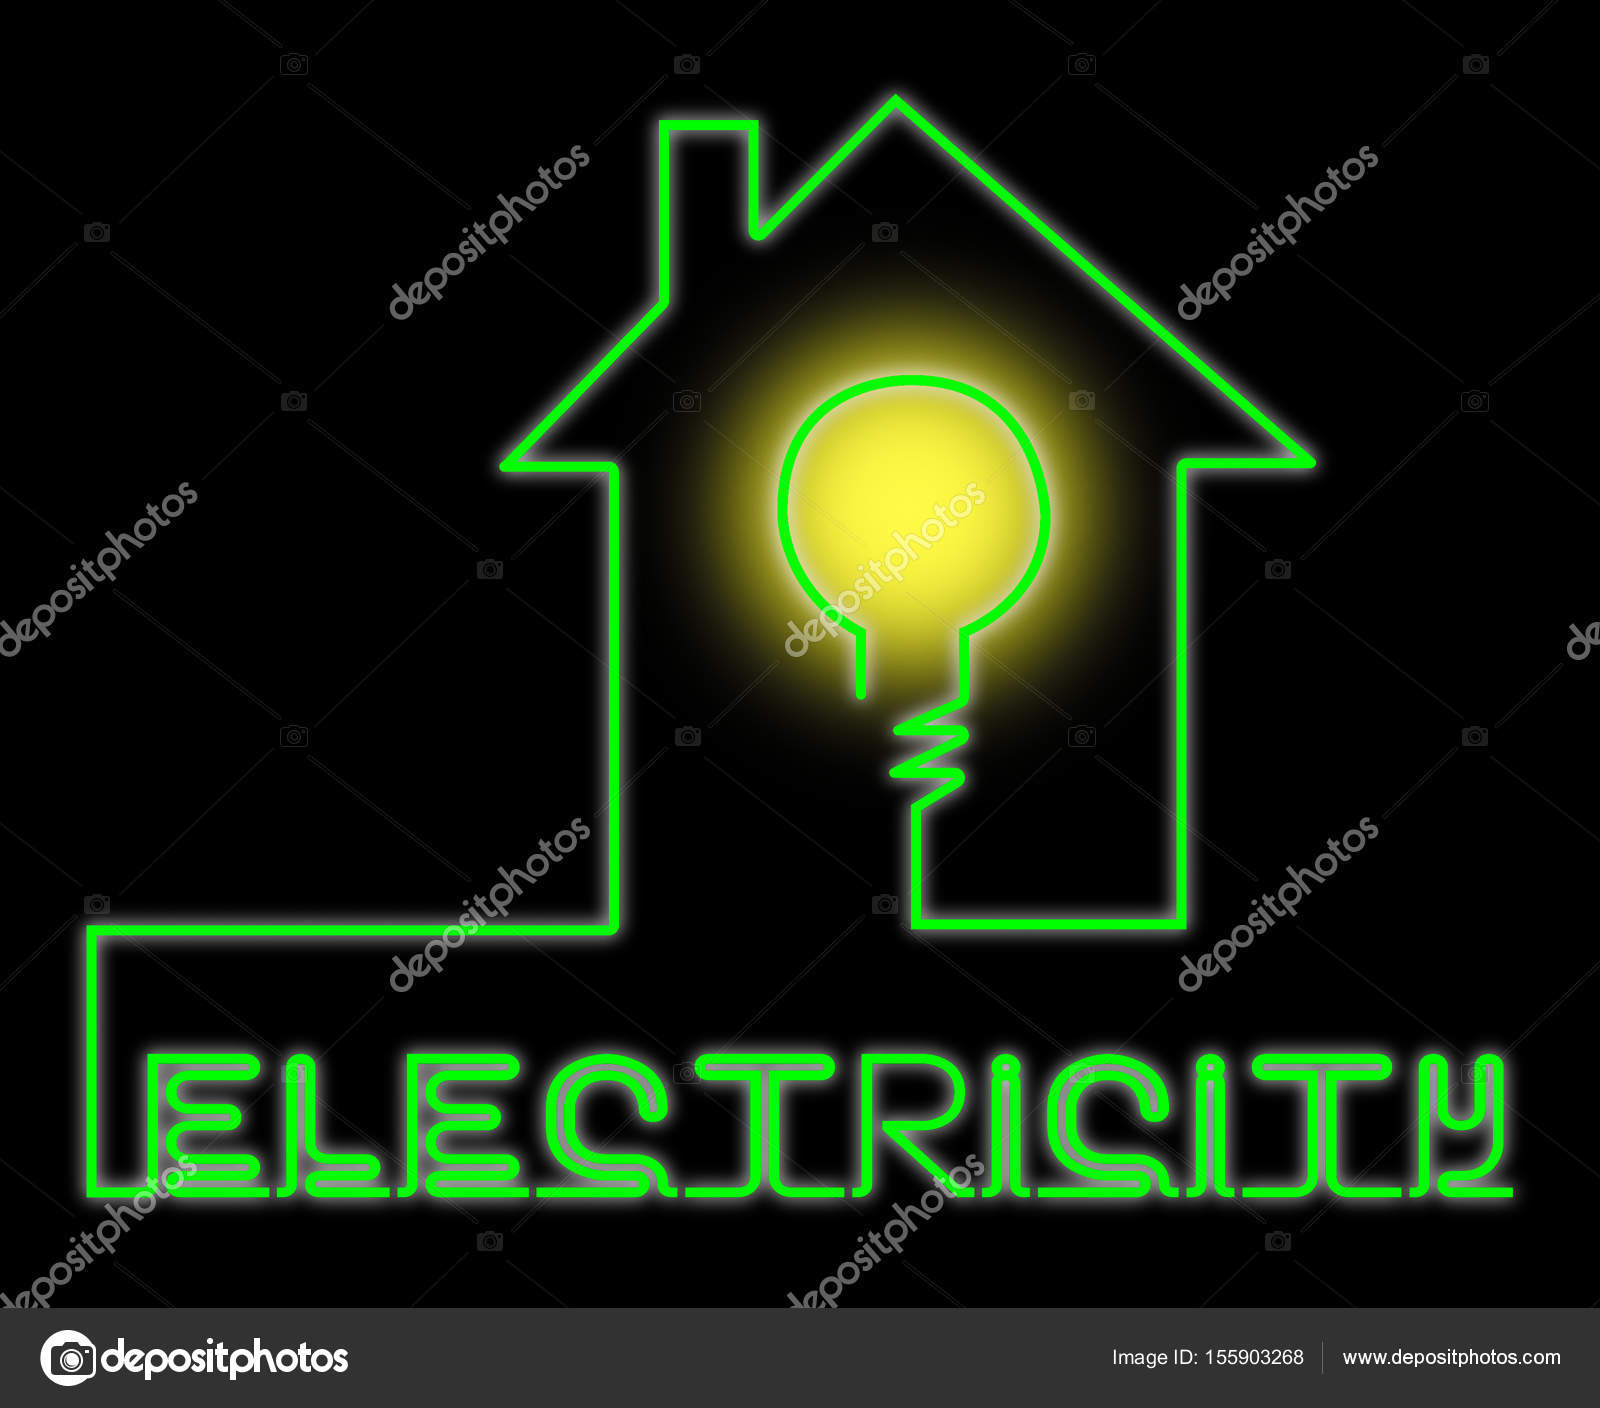 Electricity Light Bulb Means Power Source And Circuit Stock Photo